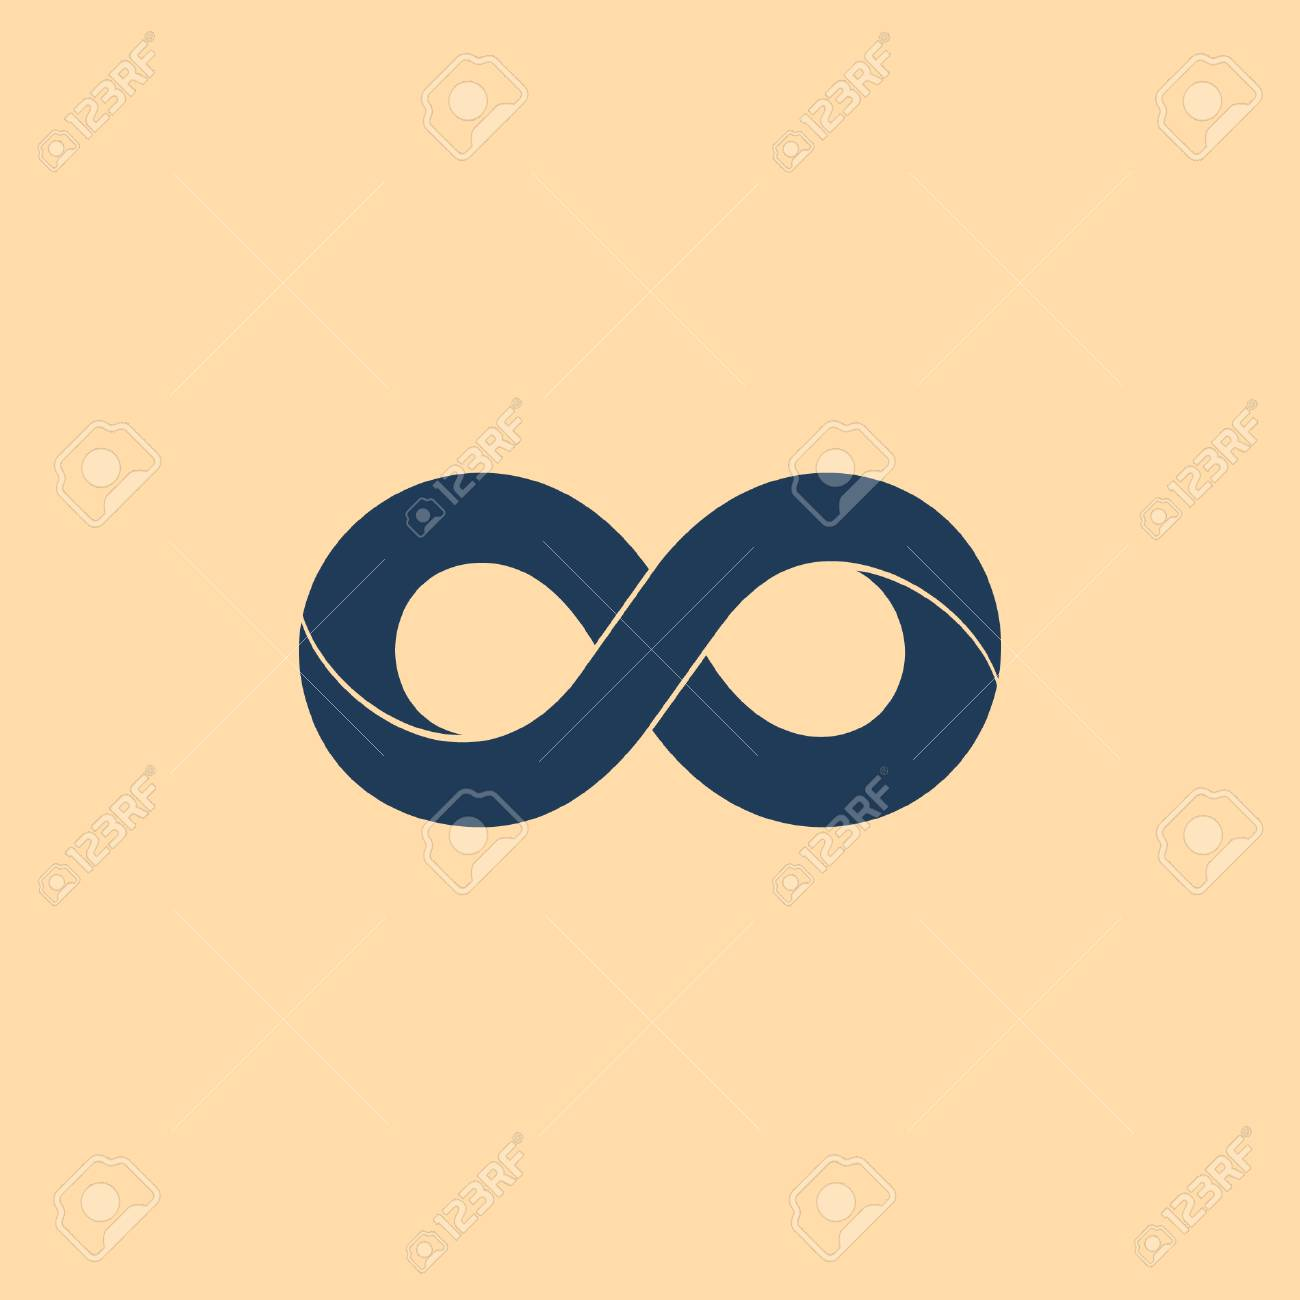 Limitless Sign Icon Infinity Symbol Isolated Royalty Free Cliparts